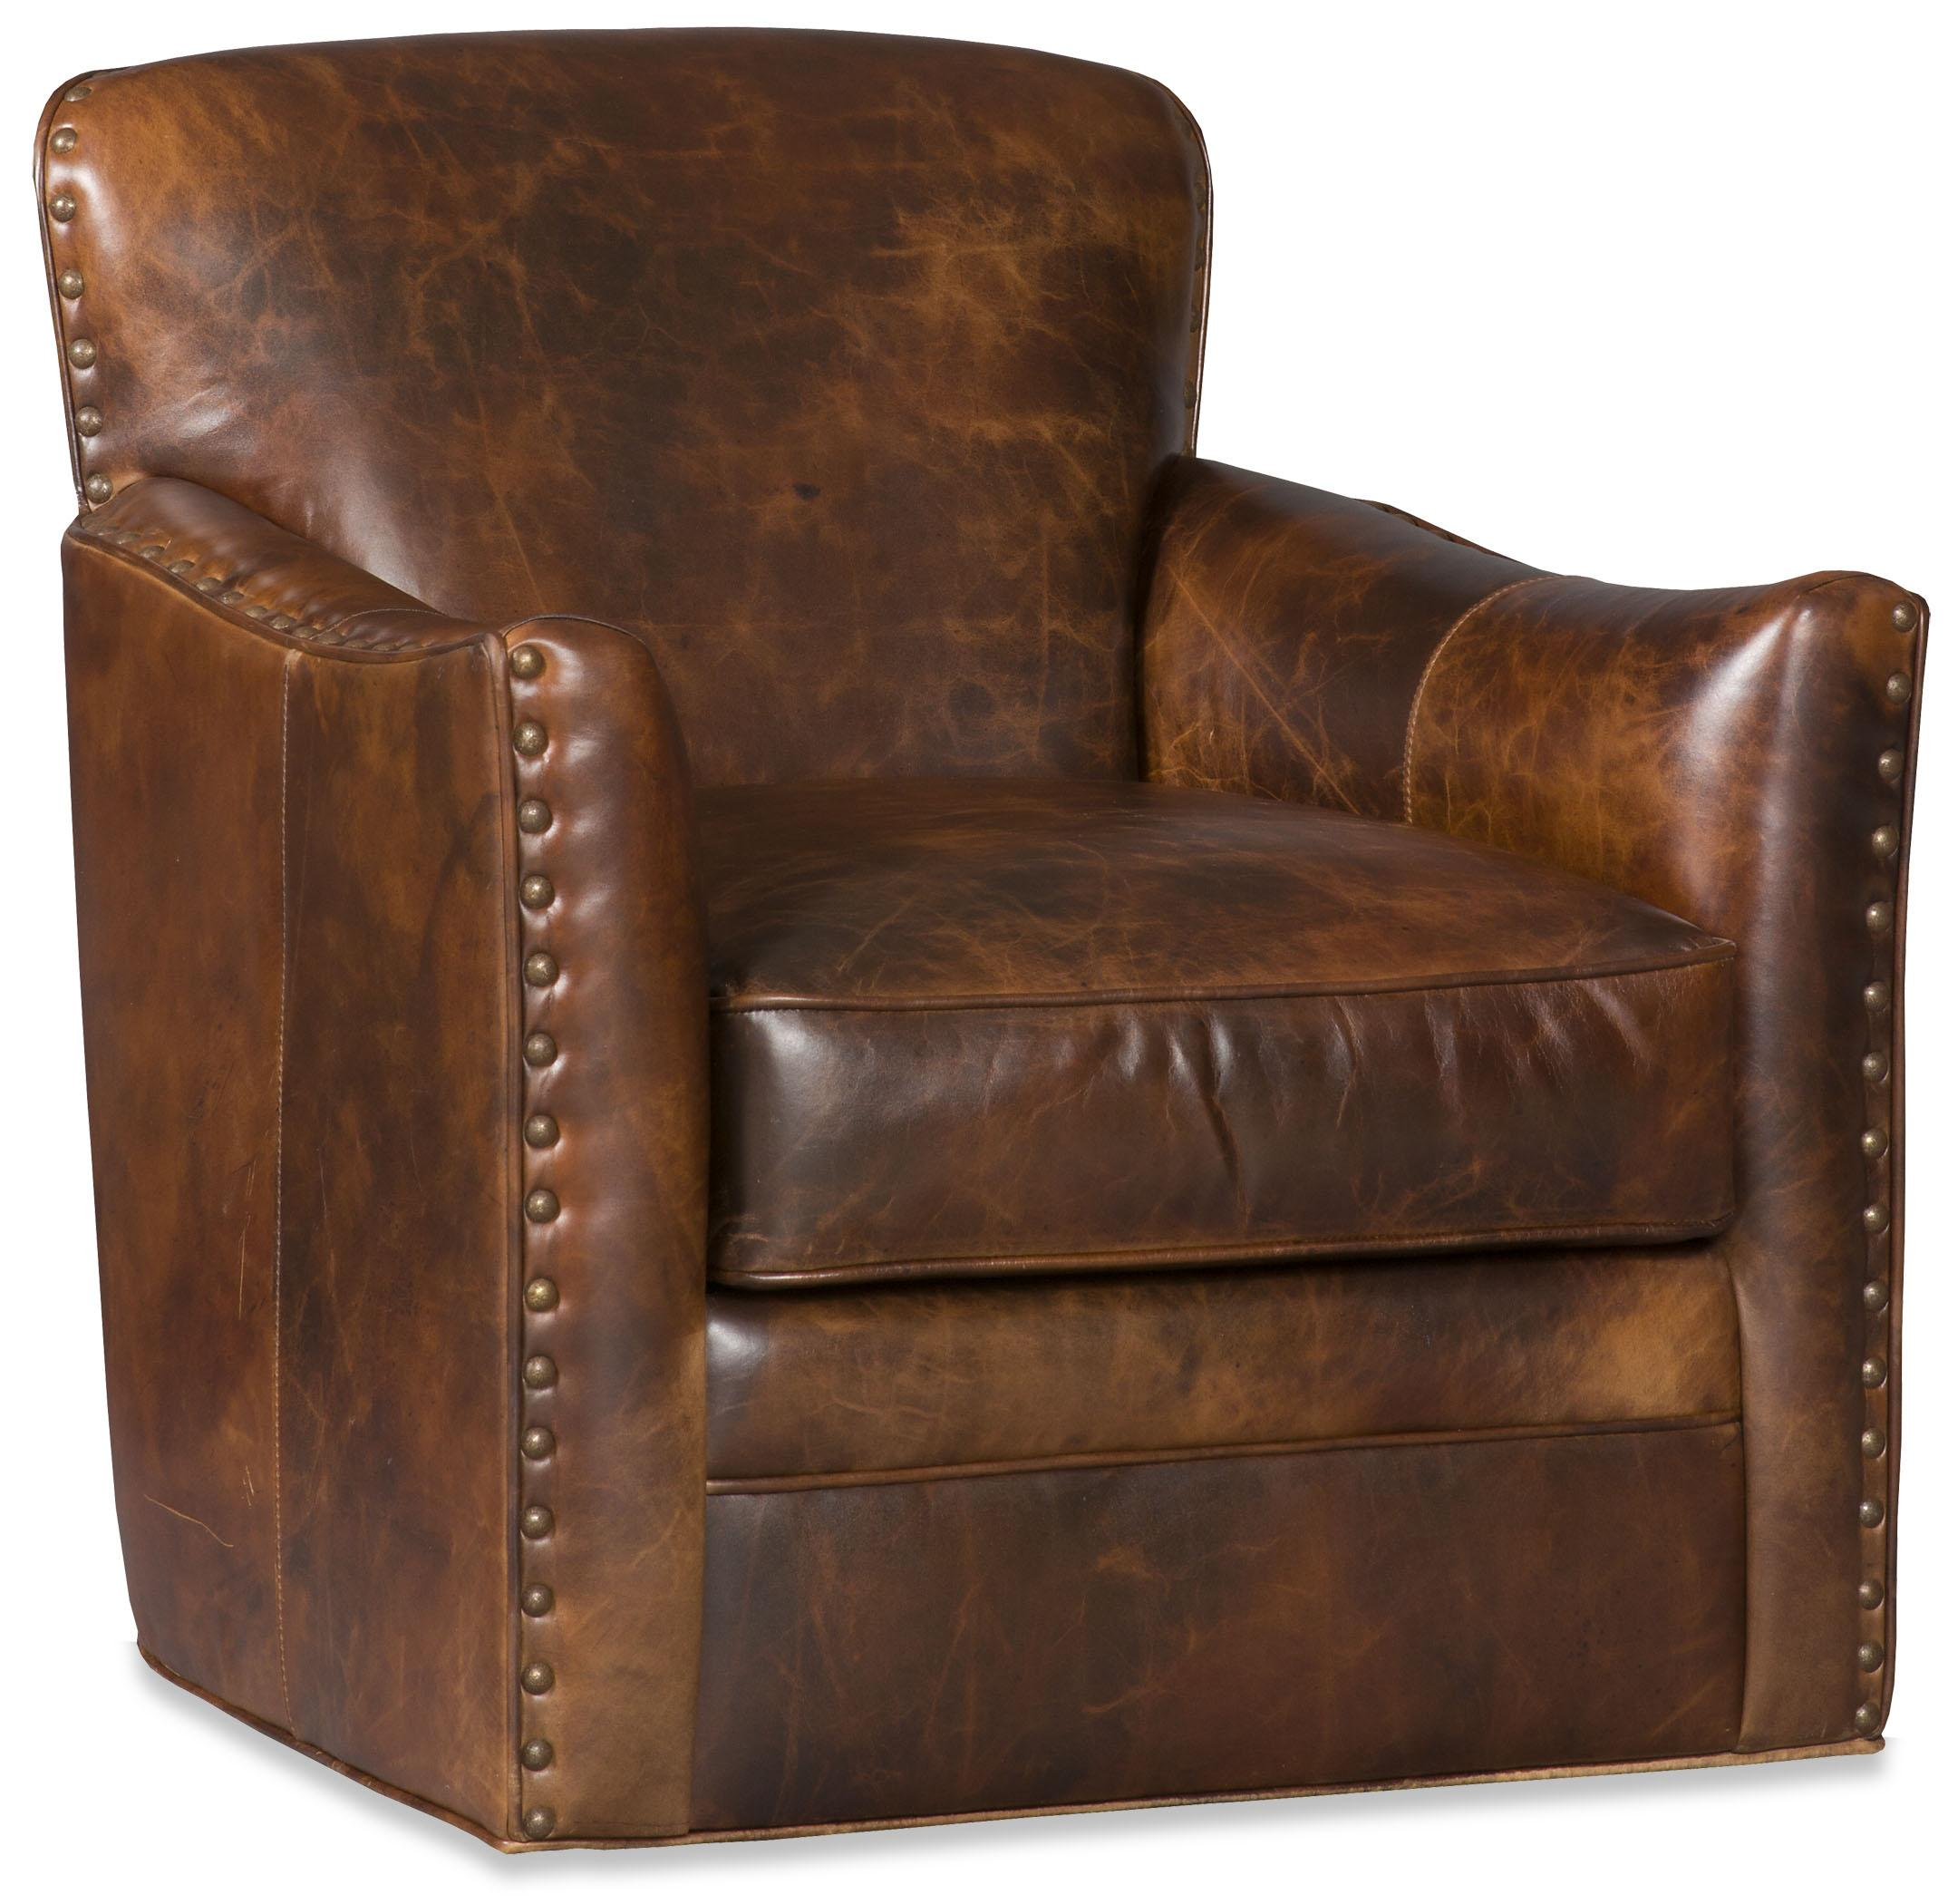 Swivel Tub Chairs Luna Swivel Tub Chair by Bradington Young at Baer's Furniture